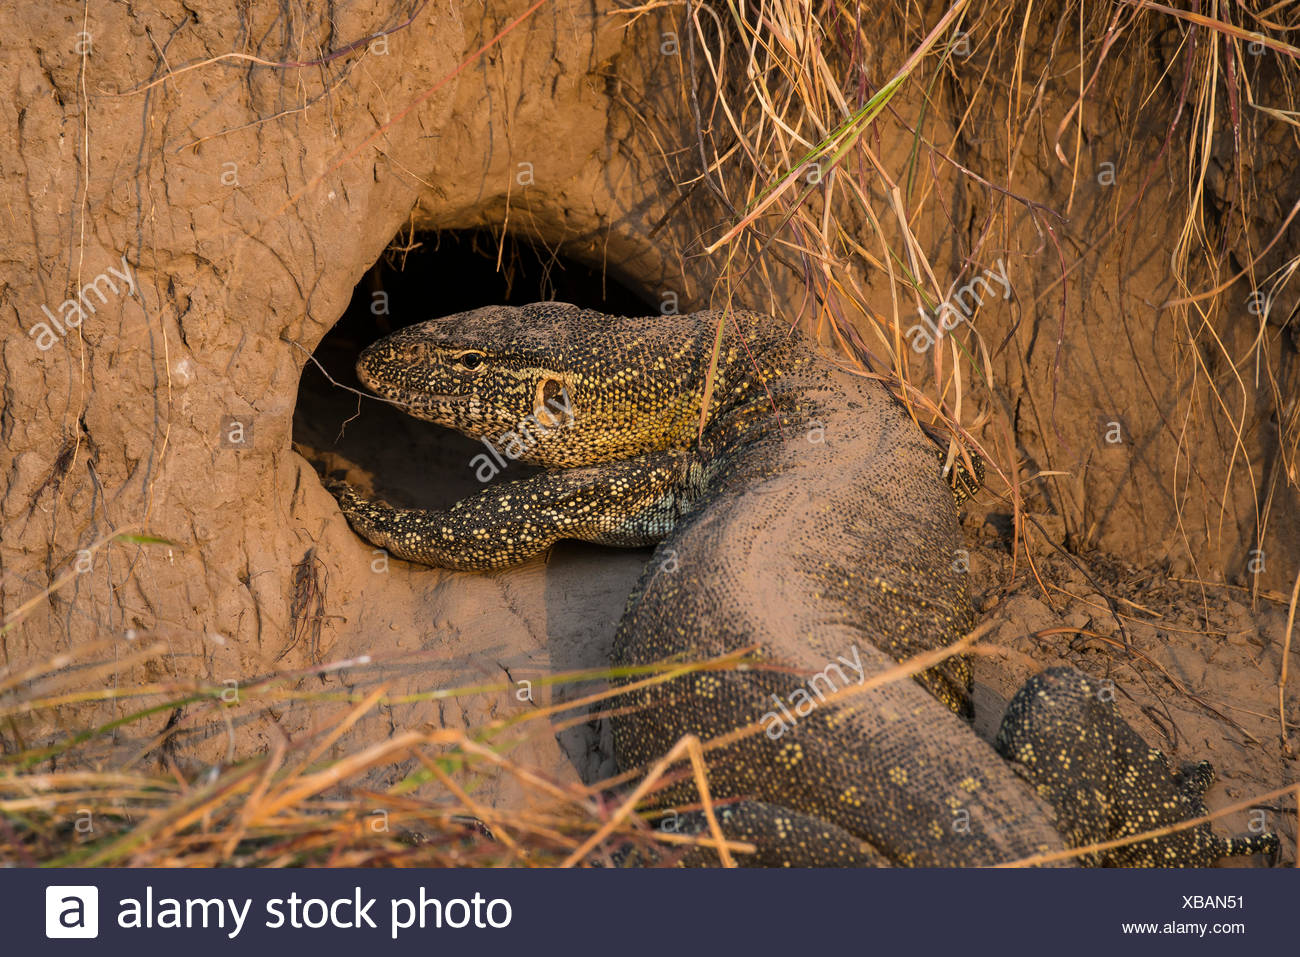 Nile monitor (Varanus niloticus) in front of hole in termite mound, Chobe National Park, Botswana - Stock Image